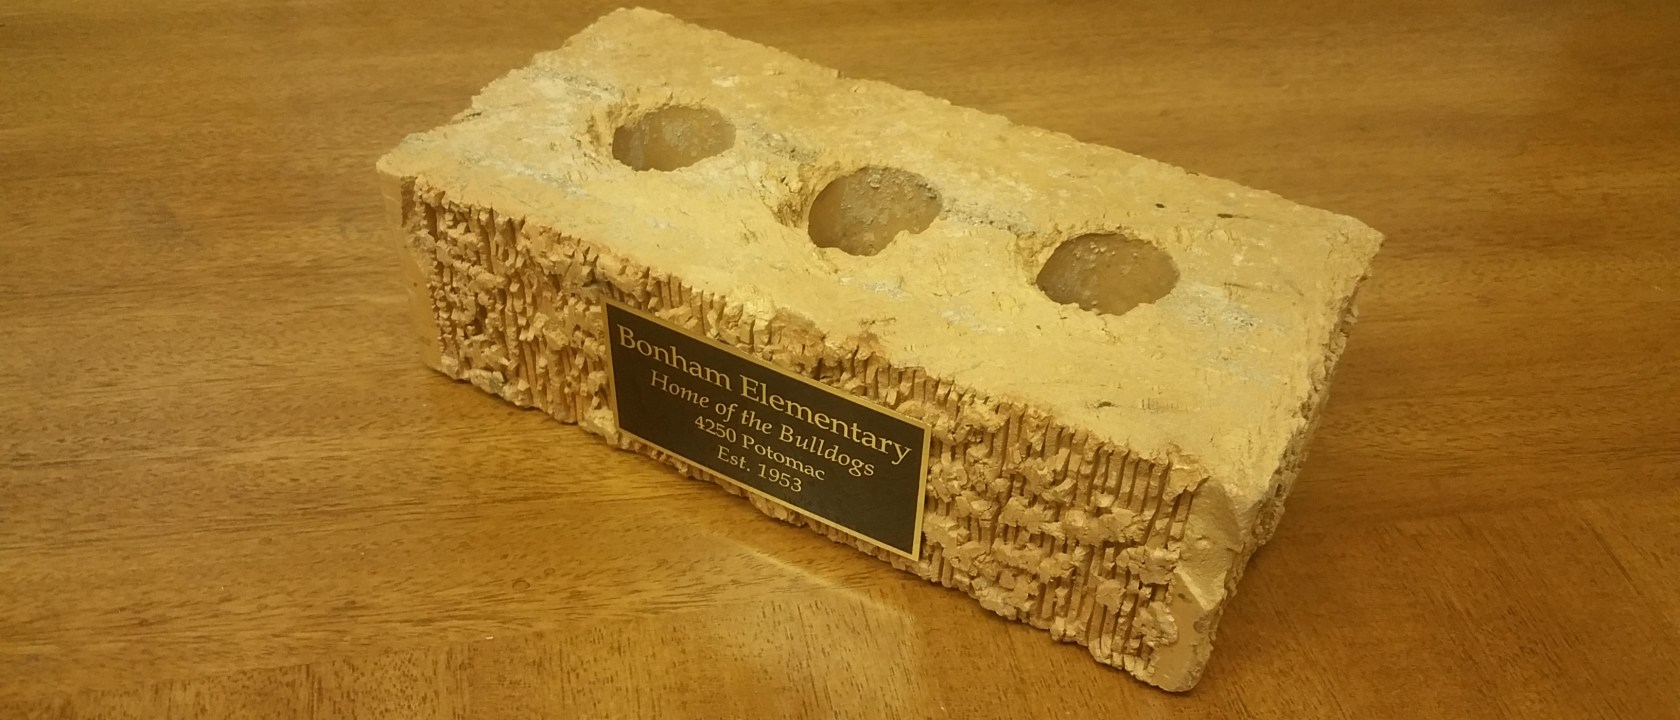 Bonham Elementary Bricks are Available to Purchase